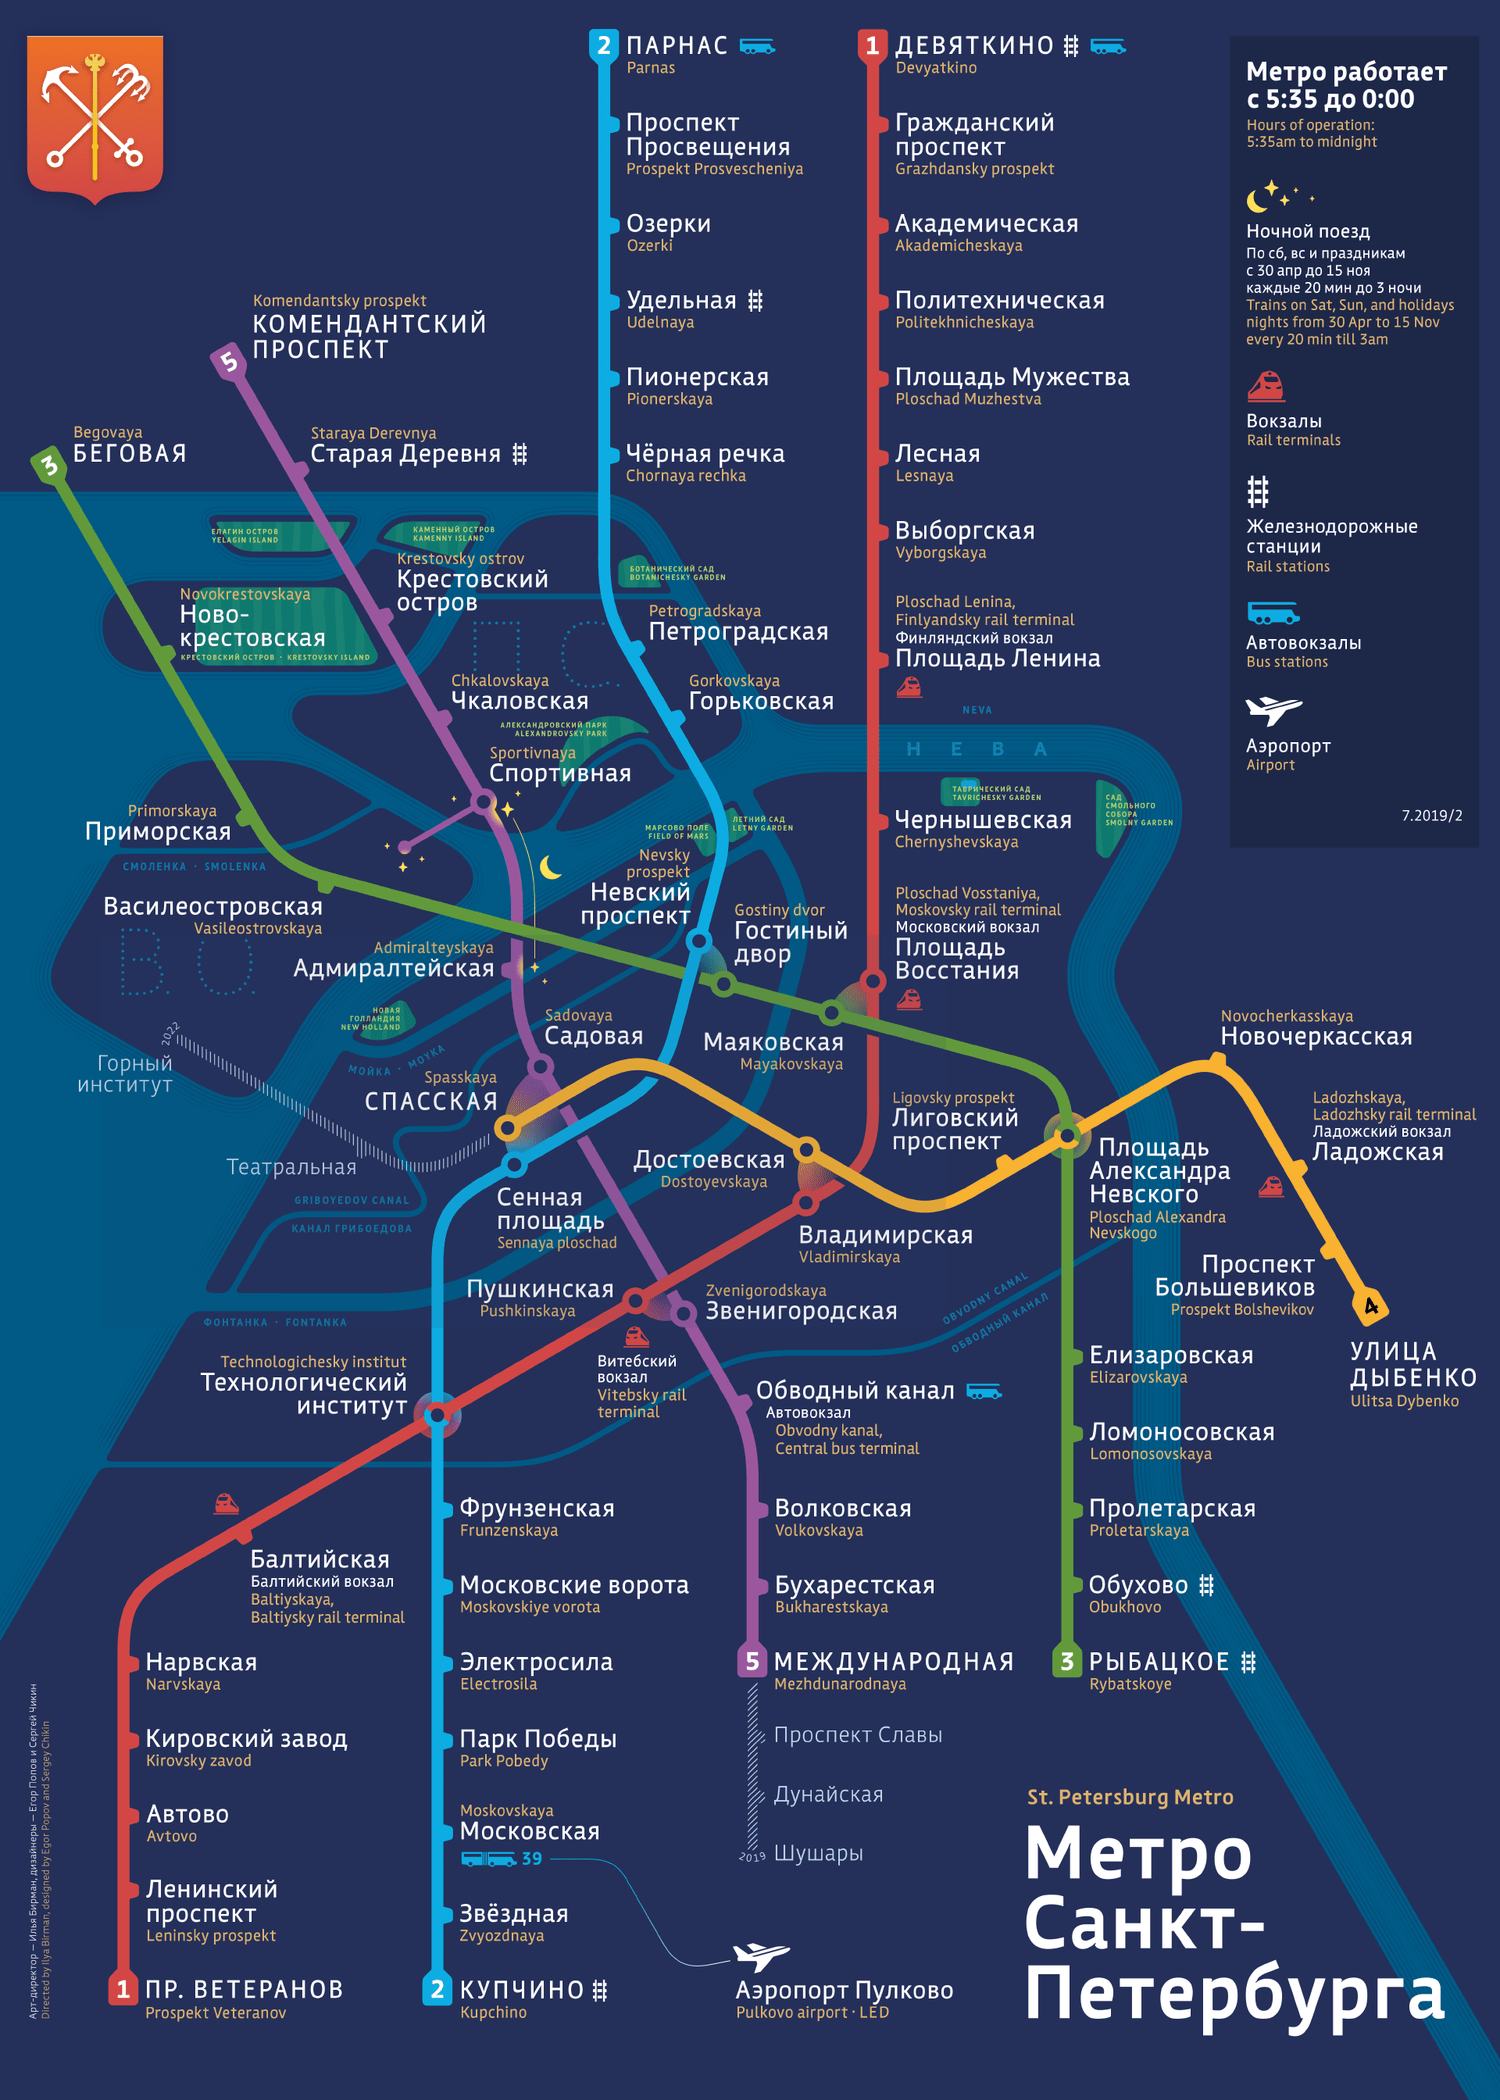 Saint Petersburg metro map in 2021: new stations, layout, expansion